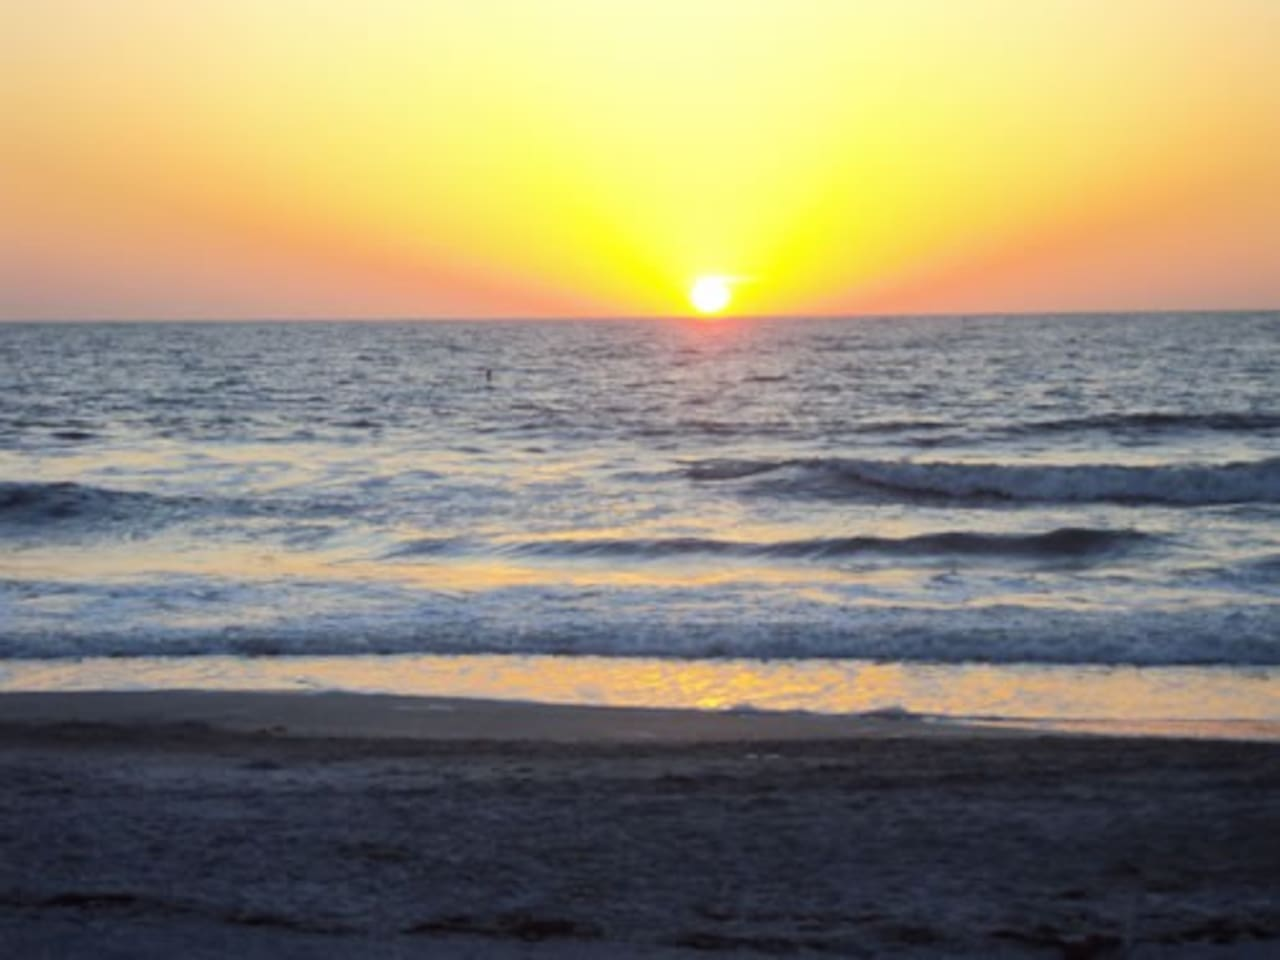 Florida beaches are a short drive away, amazing sunsets and famous fishing and tourist destinations.